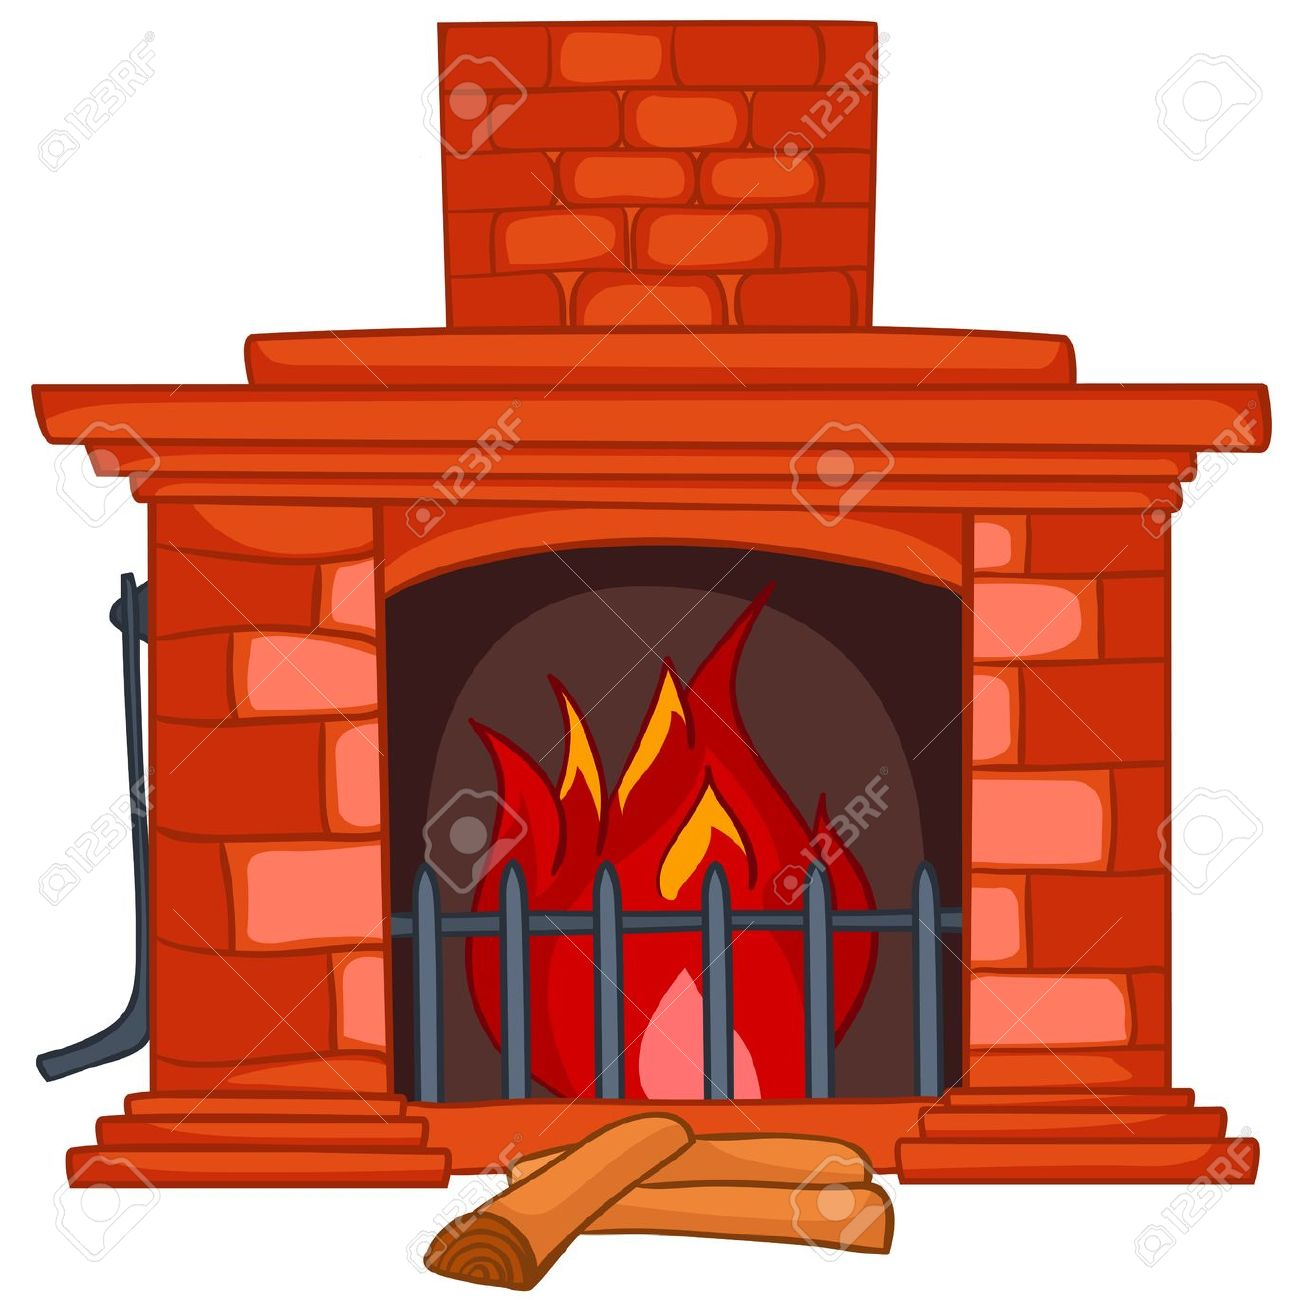 fireplace: Cartoon Home .-fireplace: Cartoon Home .-4